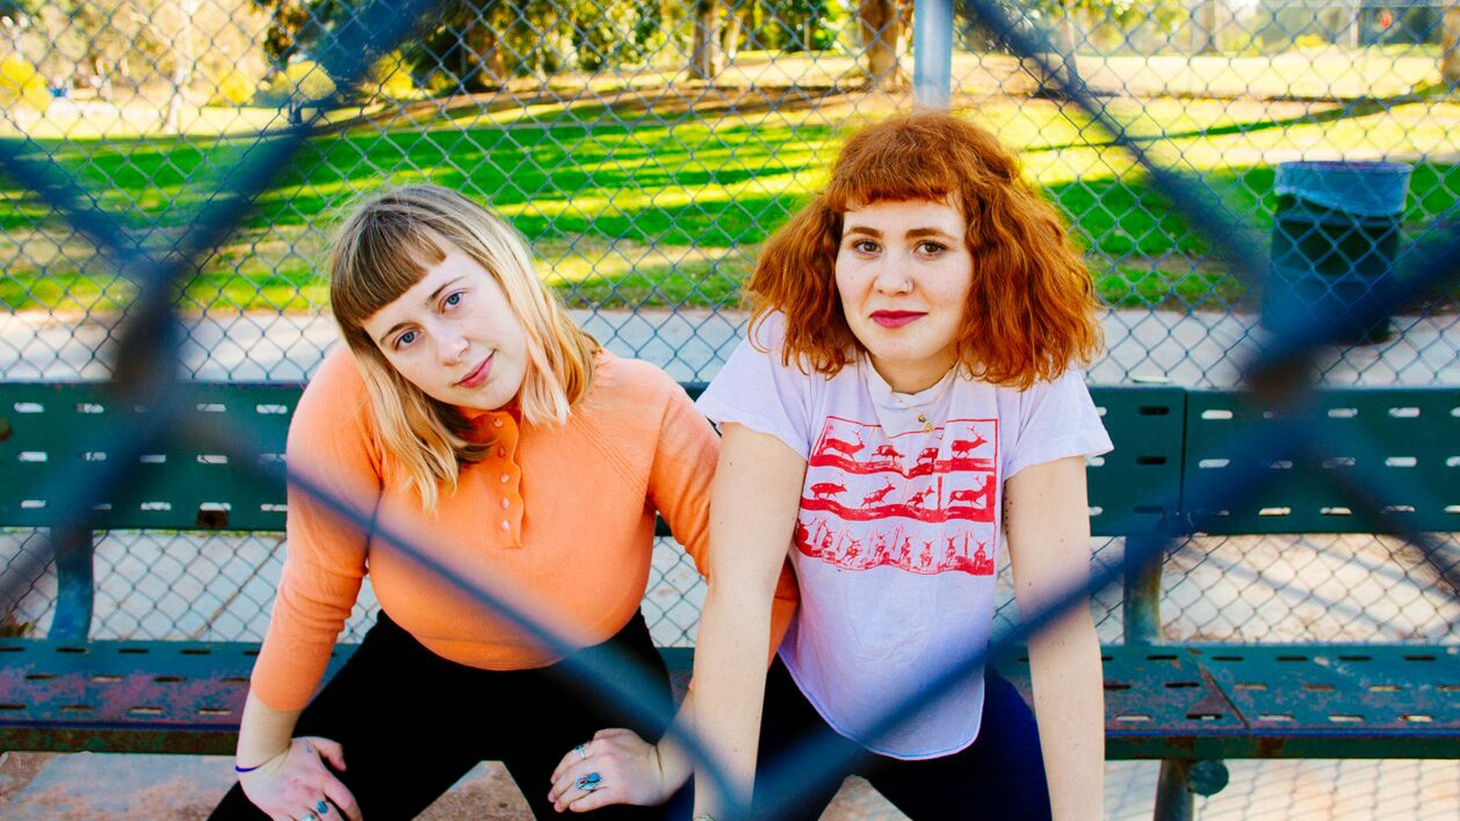 Girlpool are a punk rock duo based in LA that created quite a buzz at SXSW. They're on the bill for FYF Fest and we're happy to share a track from their forthcoming album.